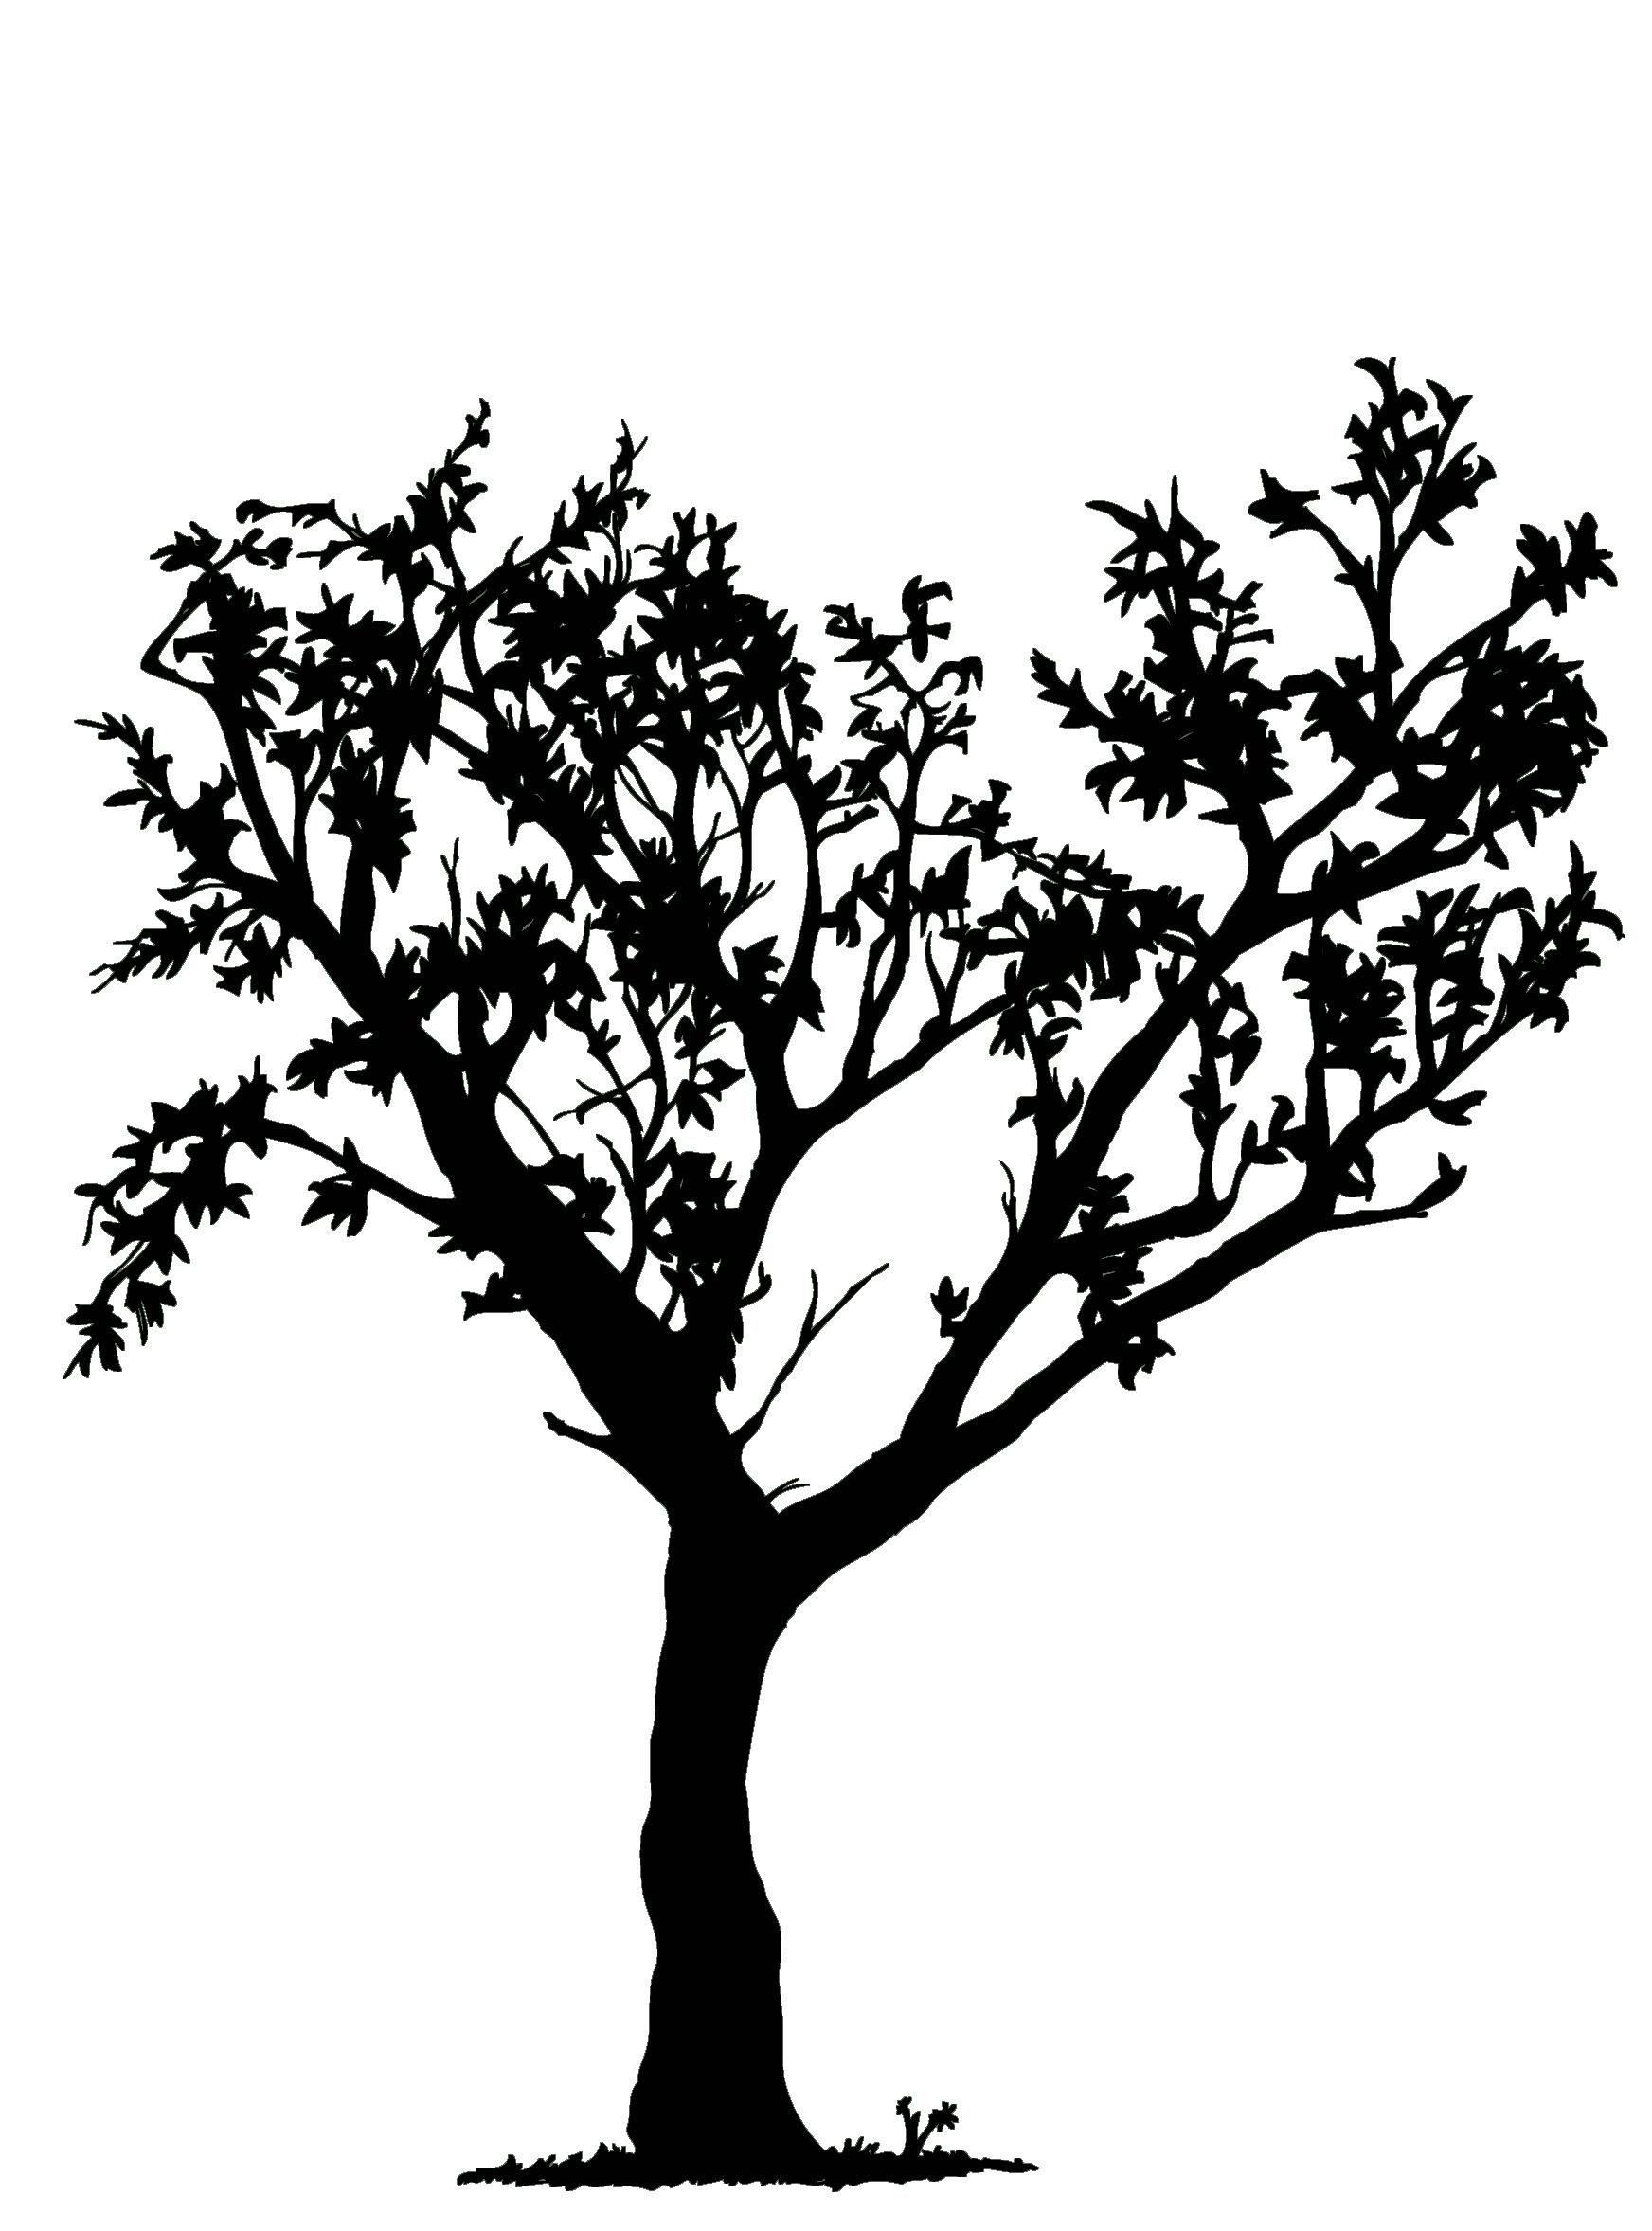 Simple Black And White Tree Design | Clipart Panda - Free ...